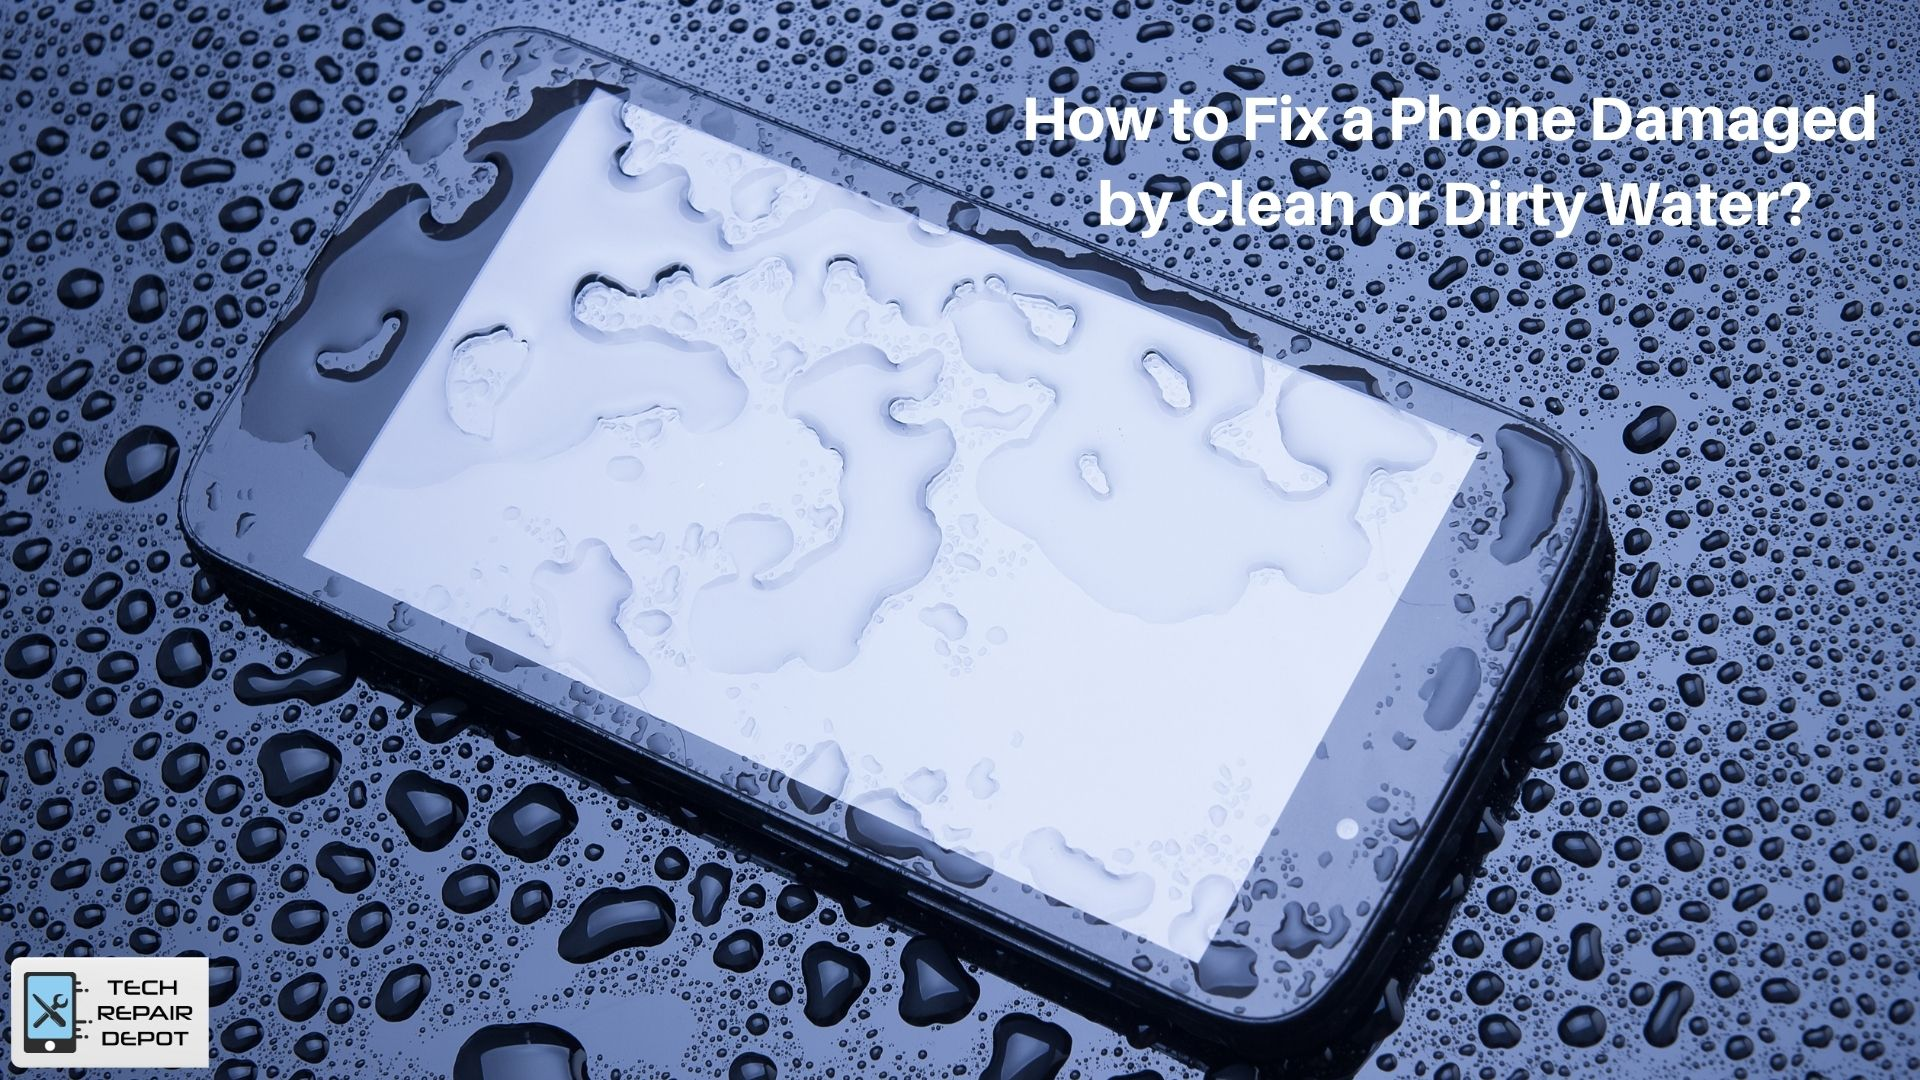 How to Fix a Phone Damaged by Clean or Dirty Water?